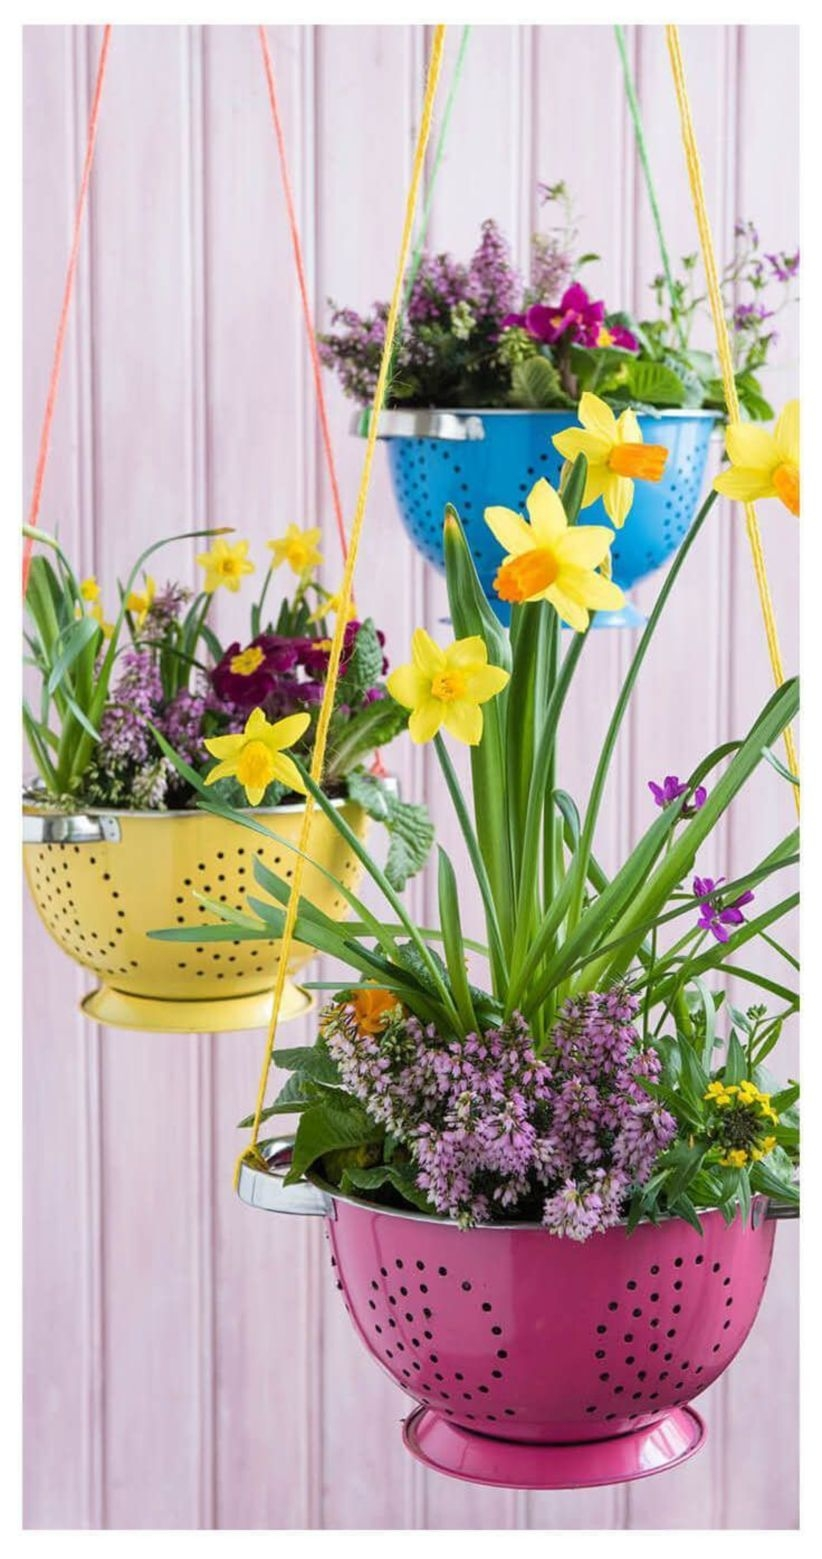 Charming outdoor hanging planters ideas to brighten your yard 29